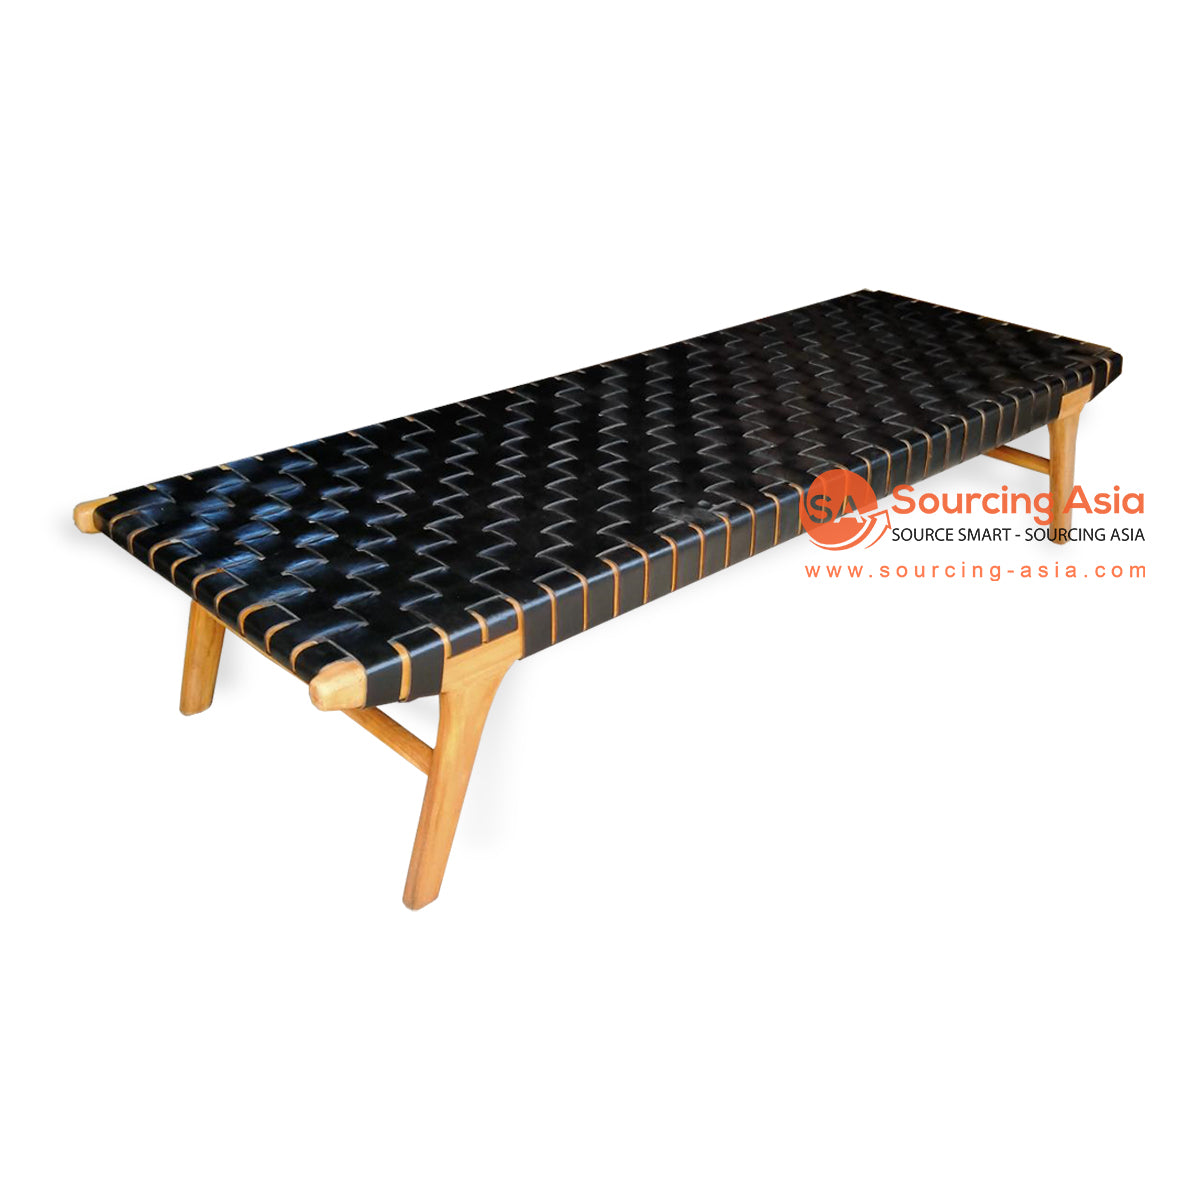 IJF015 WOVEN LEATHER BED END BENCH